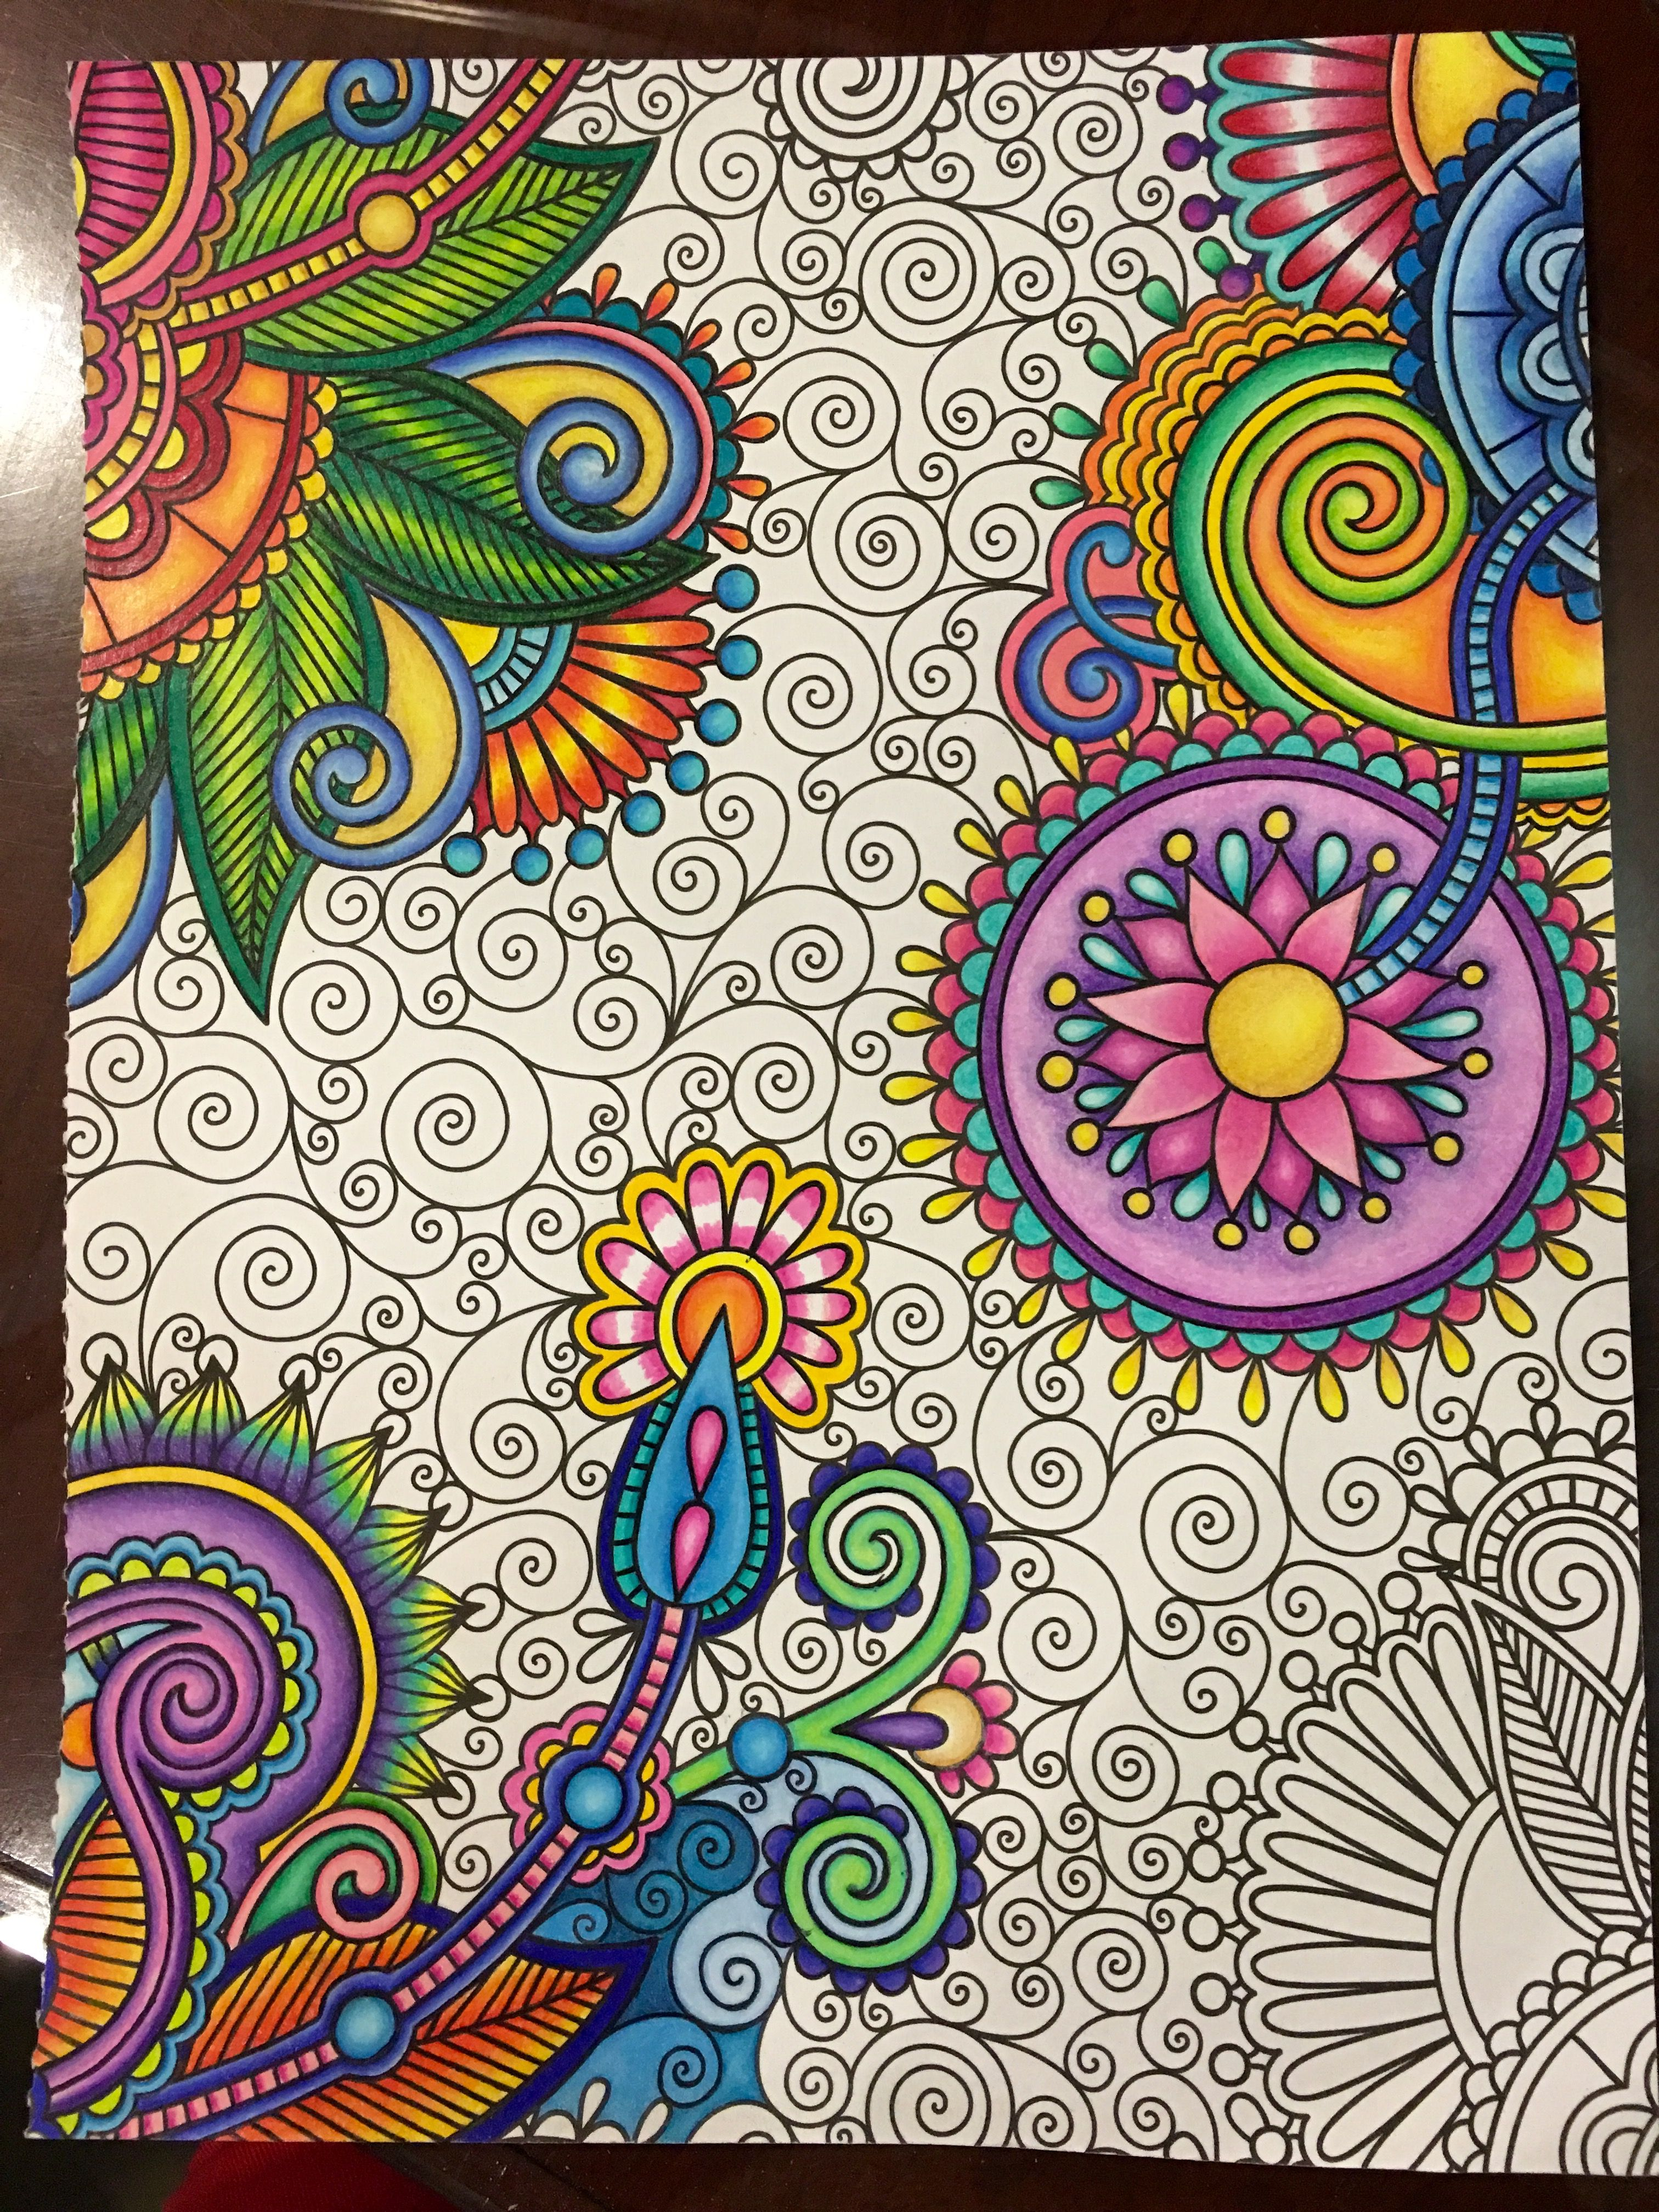 Kaleidoscope Wonders Color Art For Everyone A Coloring Book That Features 24 Design Pages Of Intricate Colorful Art Mandala Design Art Pattern Design Drawing